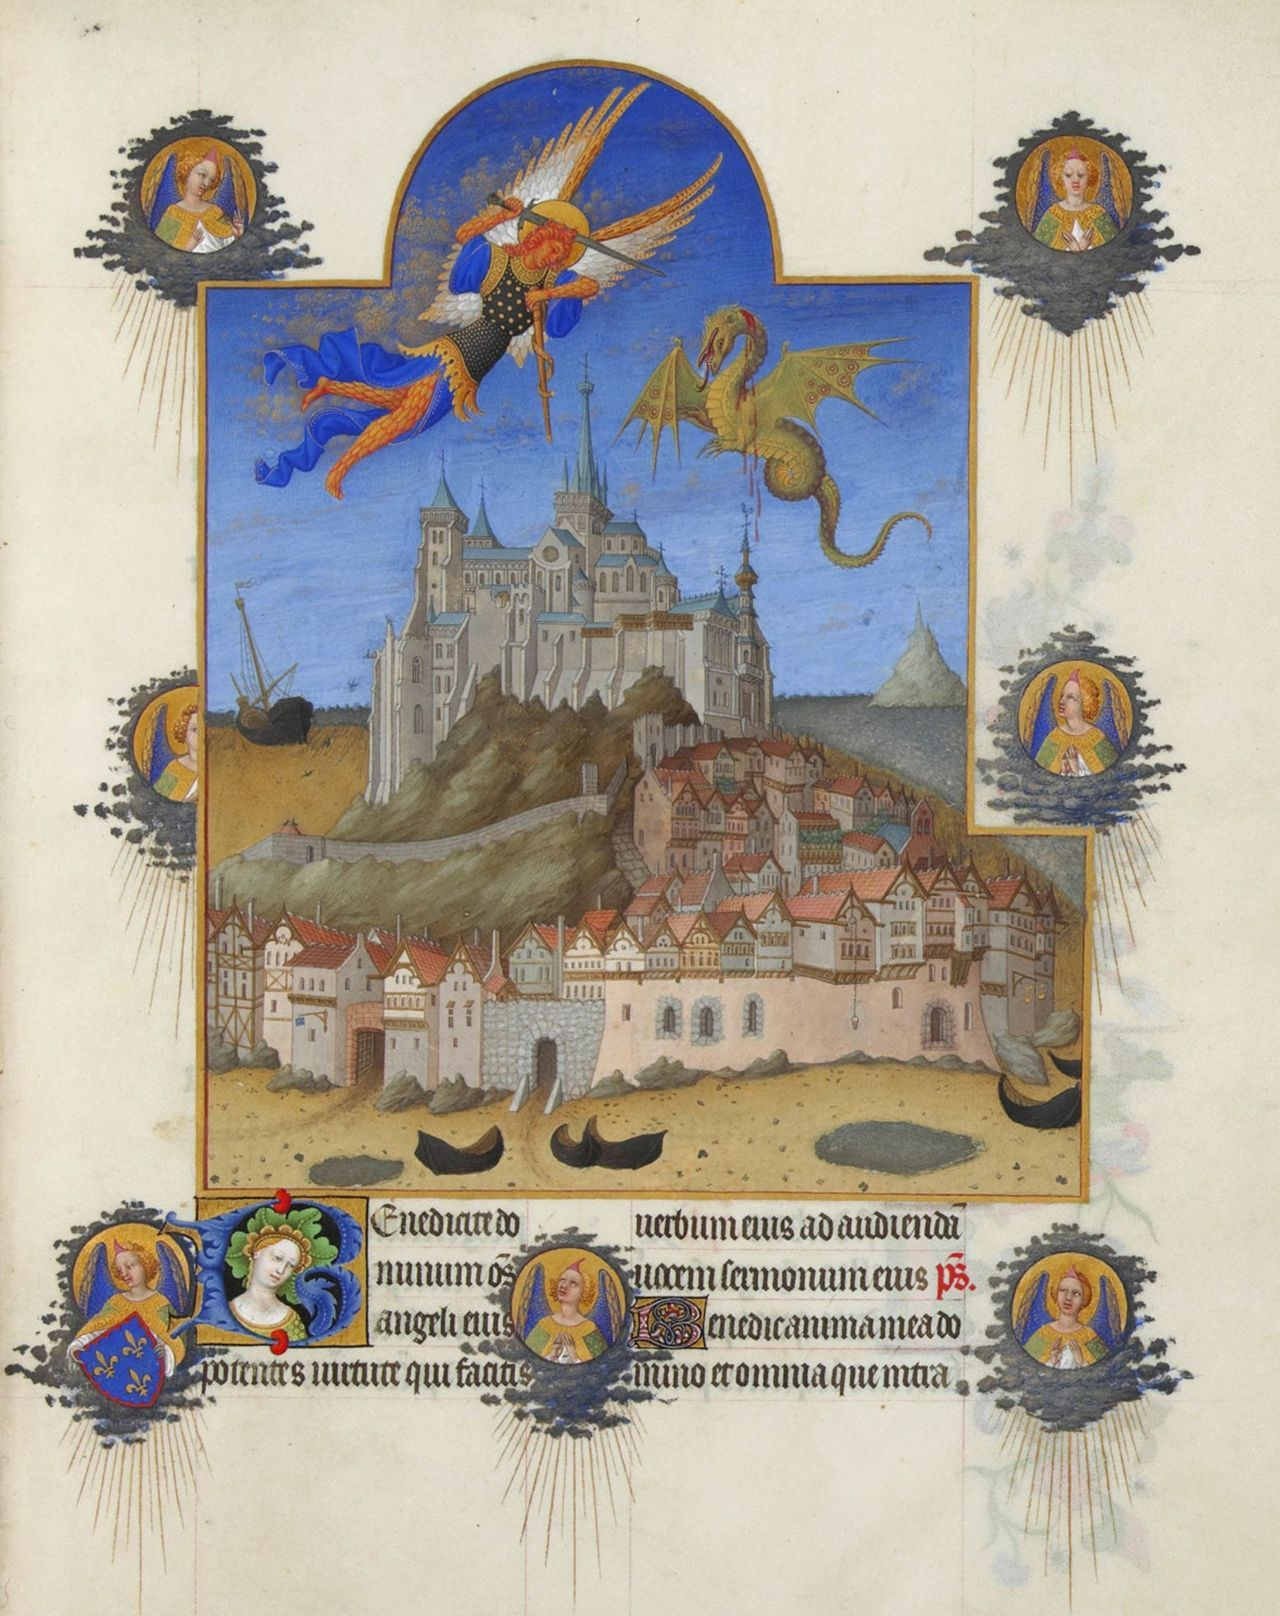 Pretty medieval manuscript of the day is a gorgeous depiction of Mont St Michel, and the the archangel St Michael slaying the dragon. From the Tres riches heures, it also features the arms of the book's patron, the Duke of Berry in the bottom left. Image source: Wikimedia Commons. Image believed to be in the public domain.